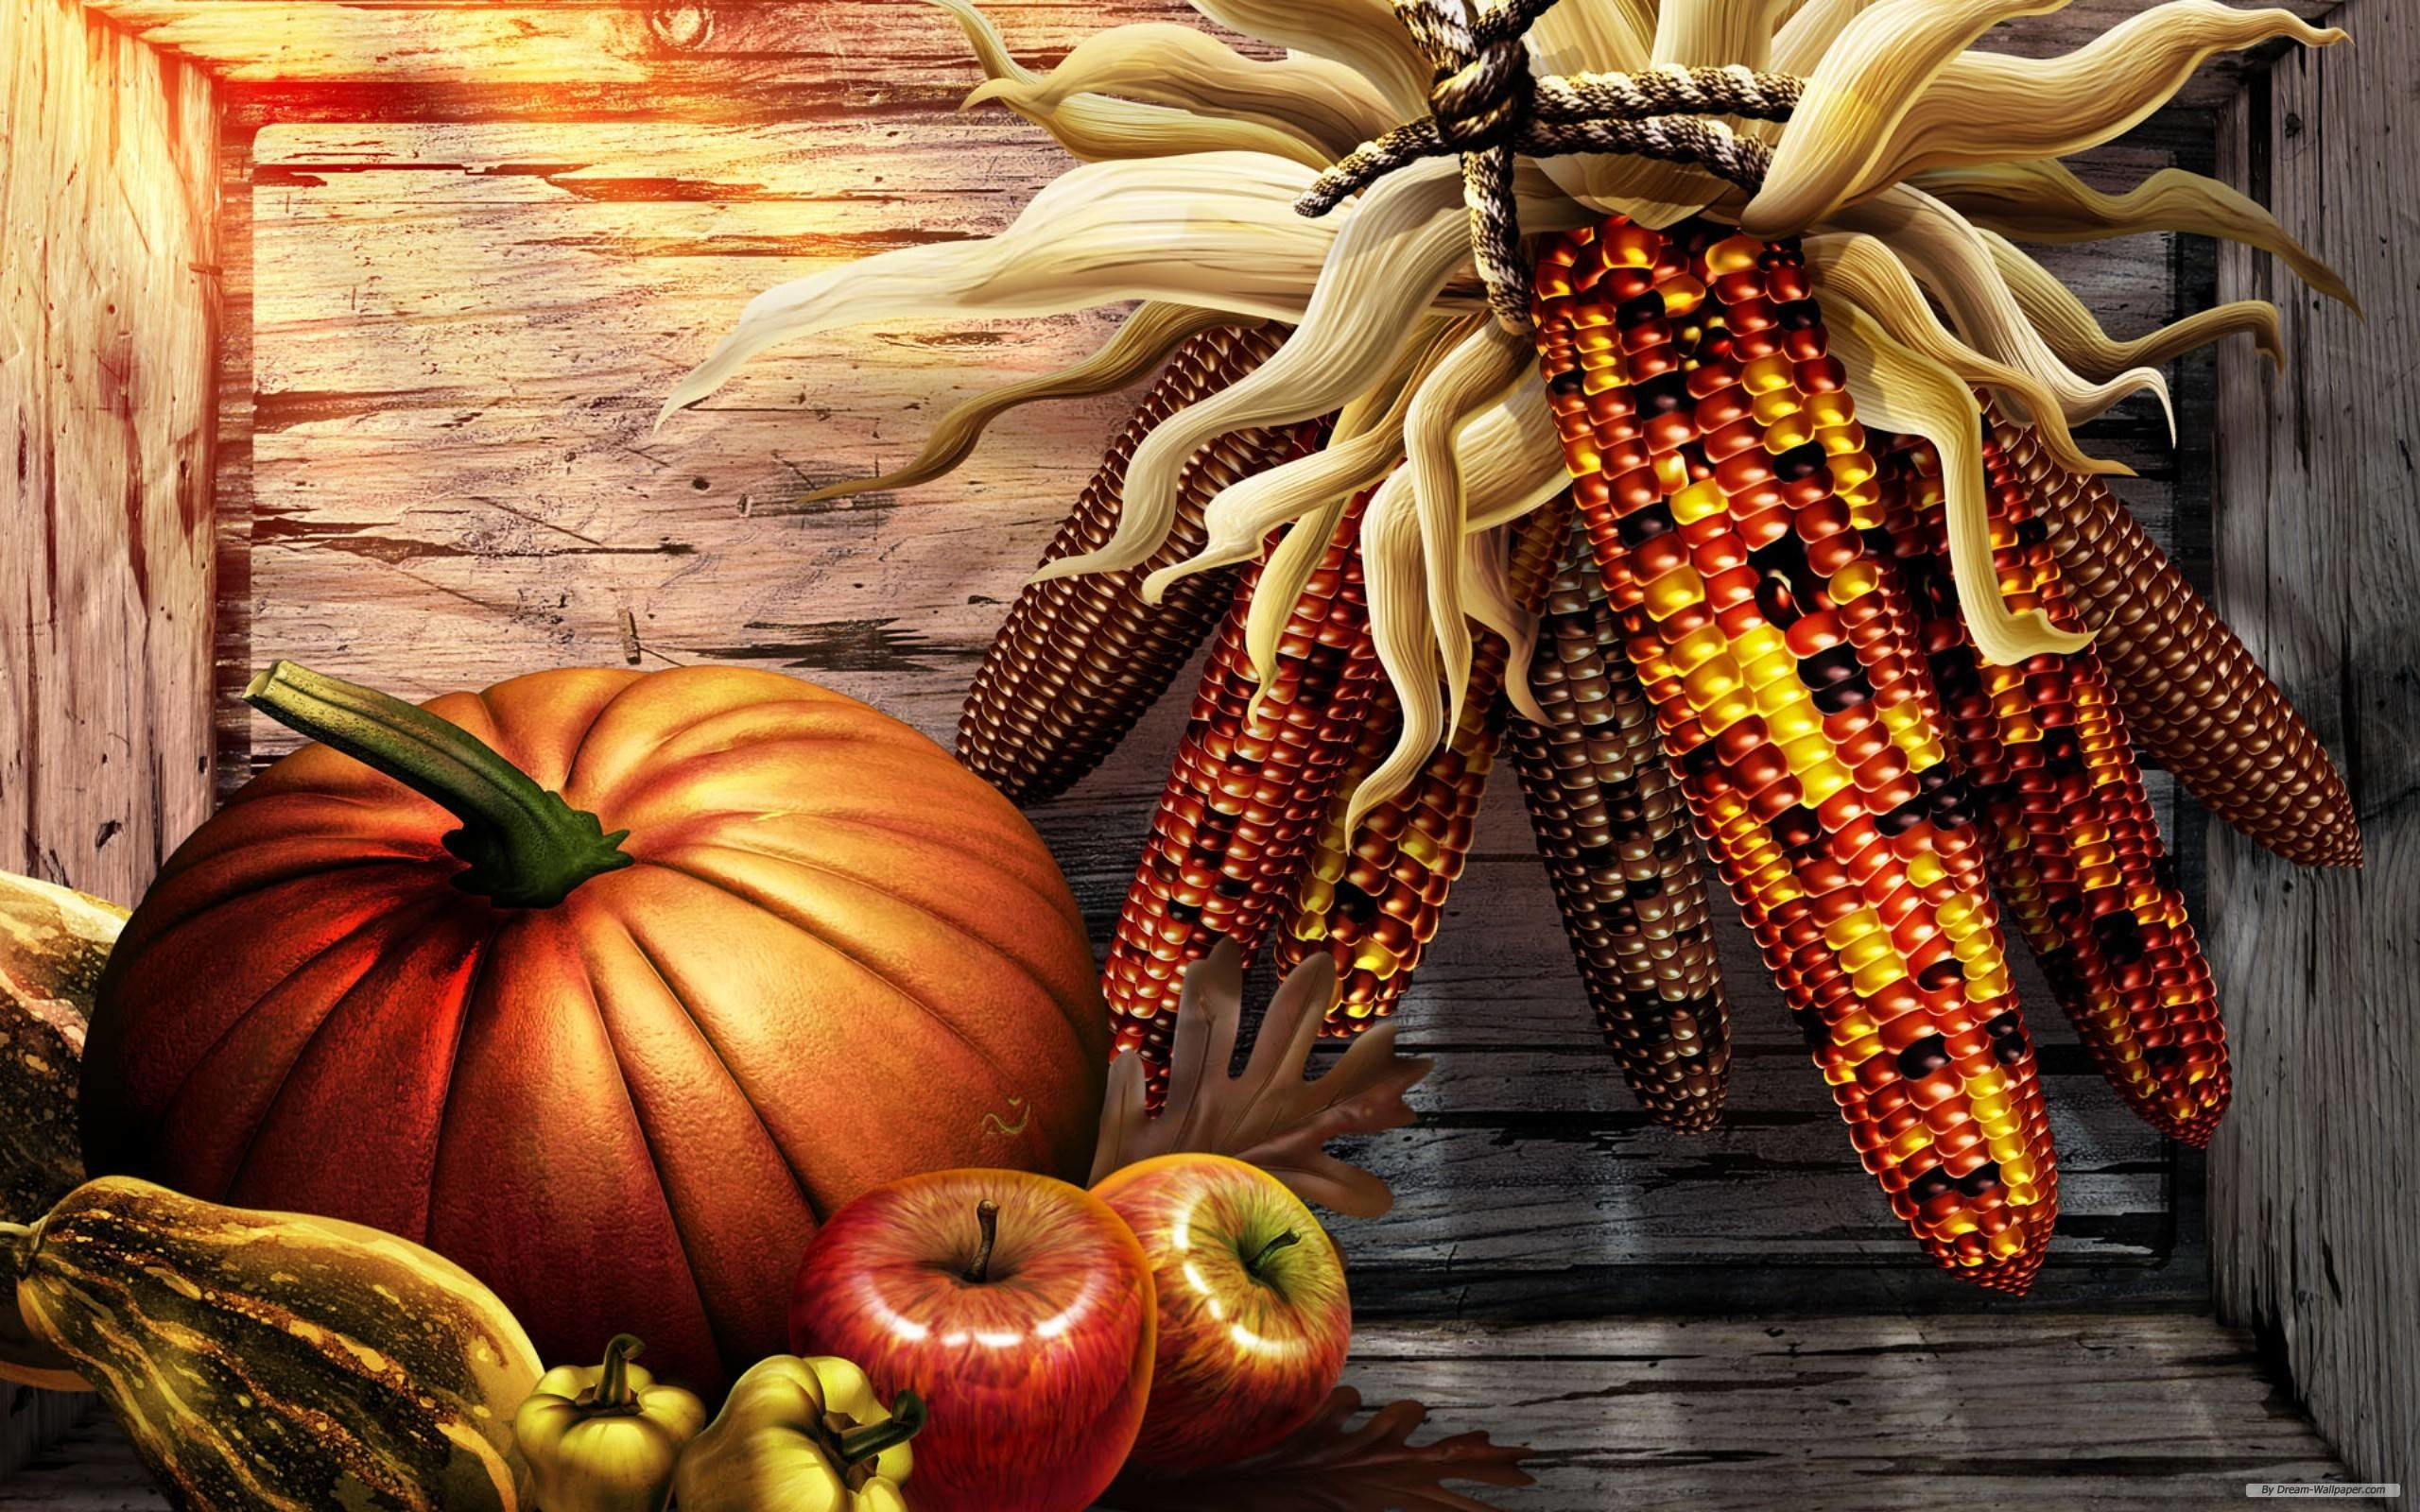 Res: 2560x1600, Free Wallpaper - Free Holiday wallpaper - Thanksgiving Day .